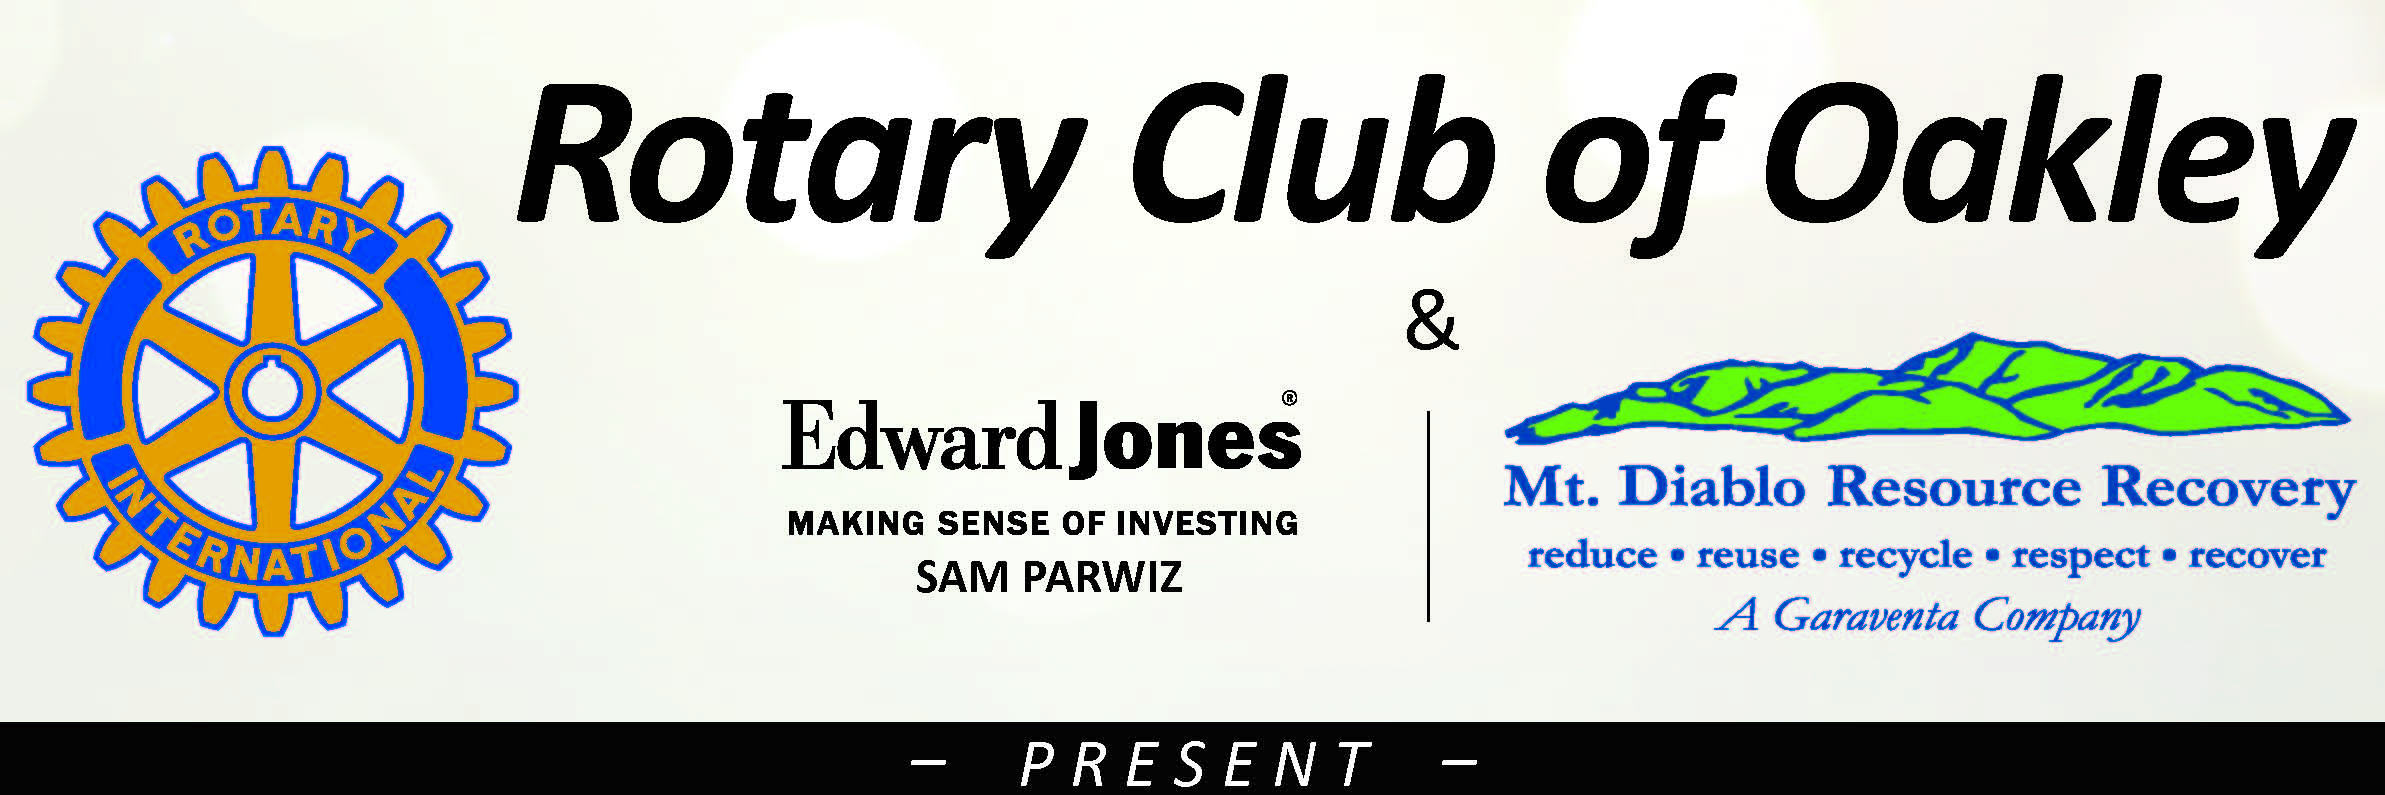 Rotary Charter Gala sponsors Edward Jones and Mr. Diablo Resource Recovery